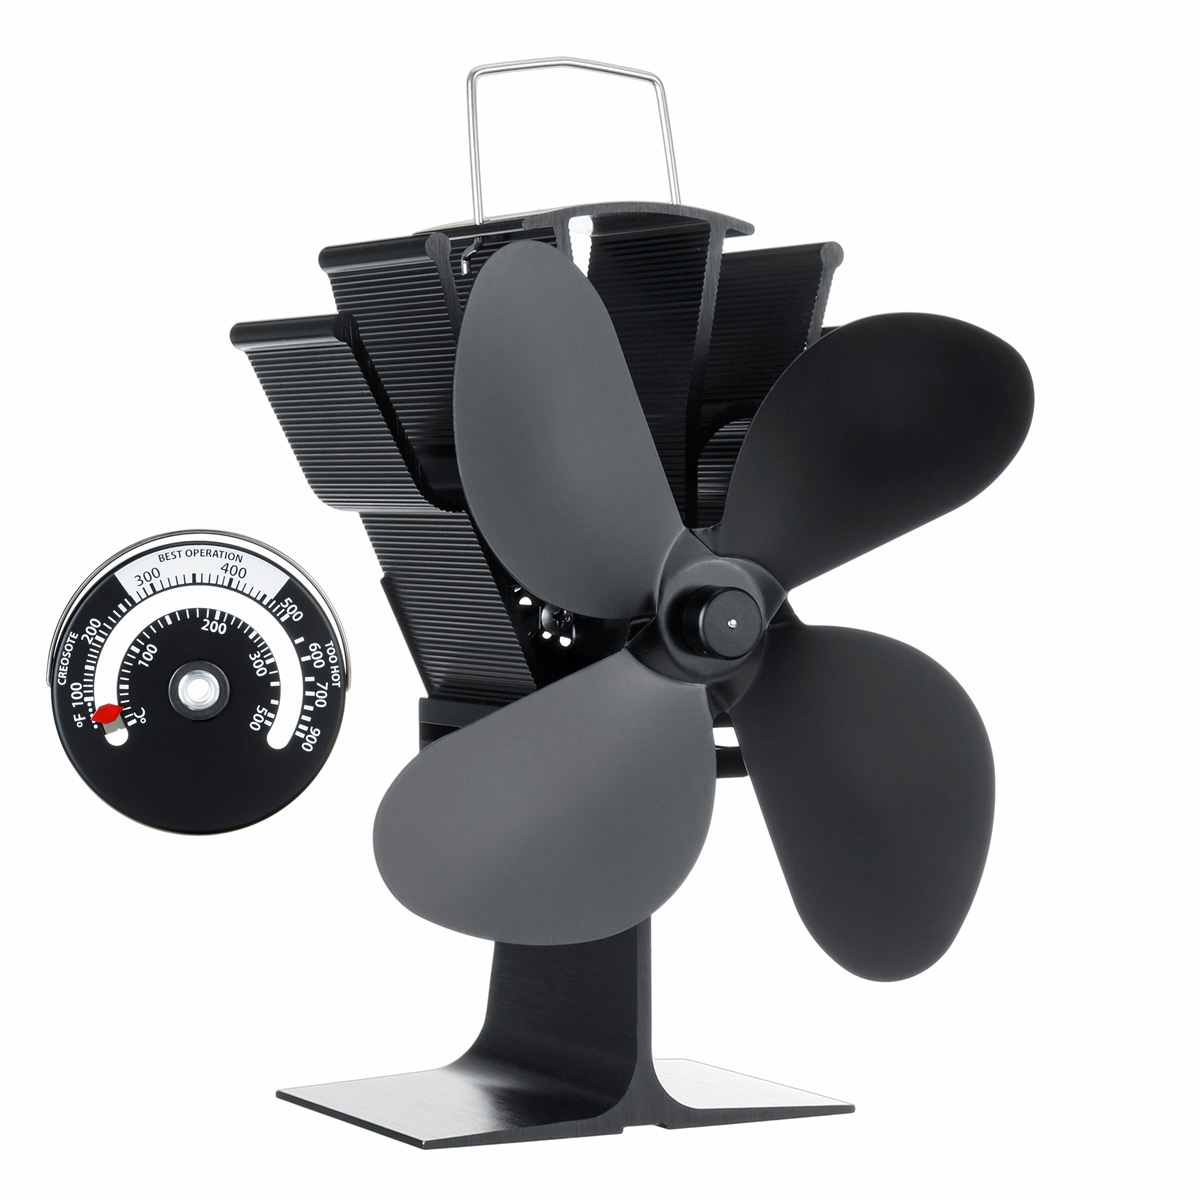 Black Fireplace Fan 4 Blade Heat Powered Stove Fan With Temperature Monitor Wood Burner Fan For Home Efficient Heat Distribution